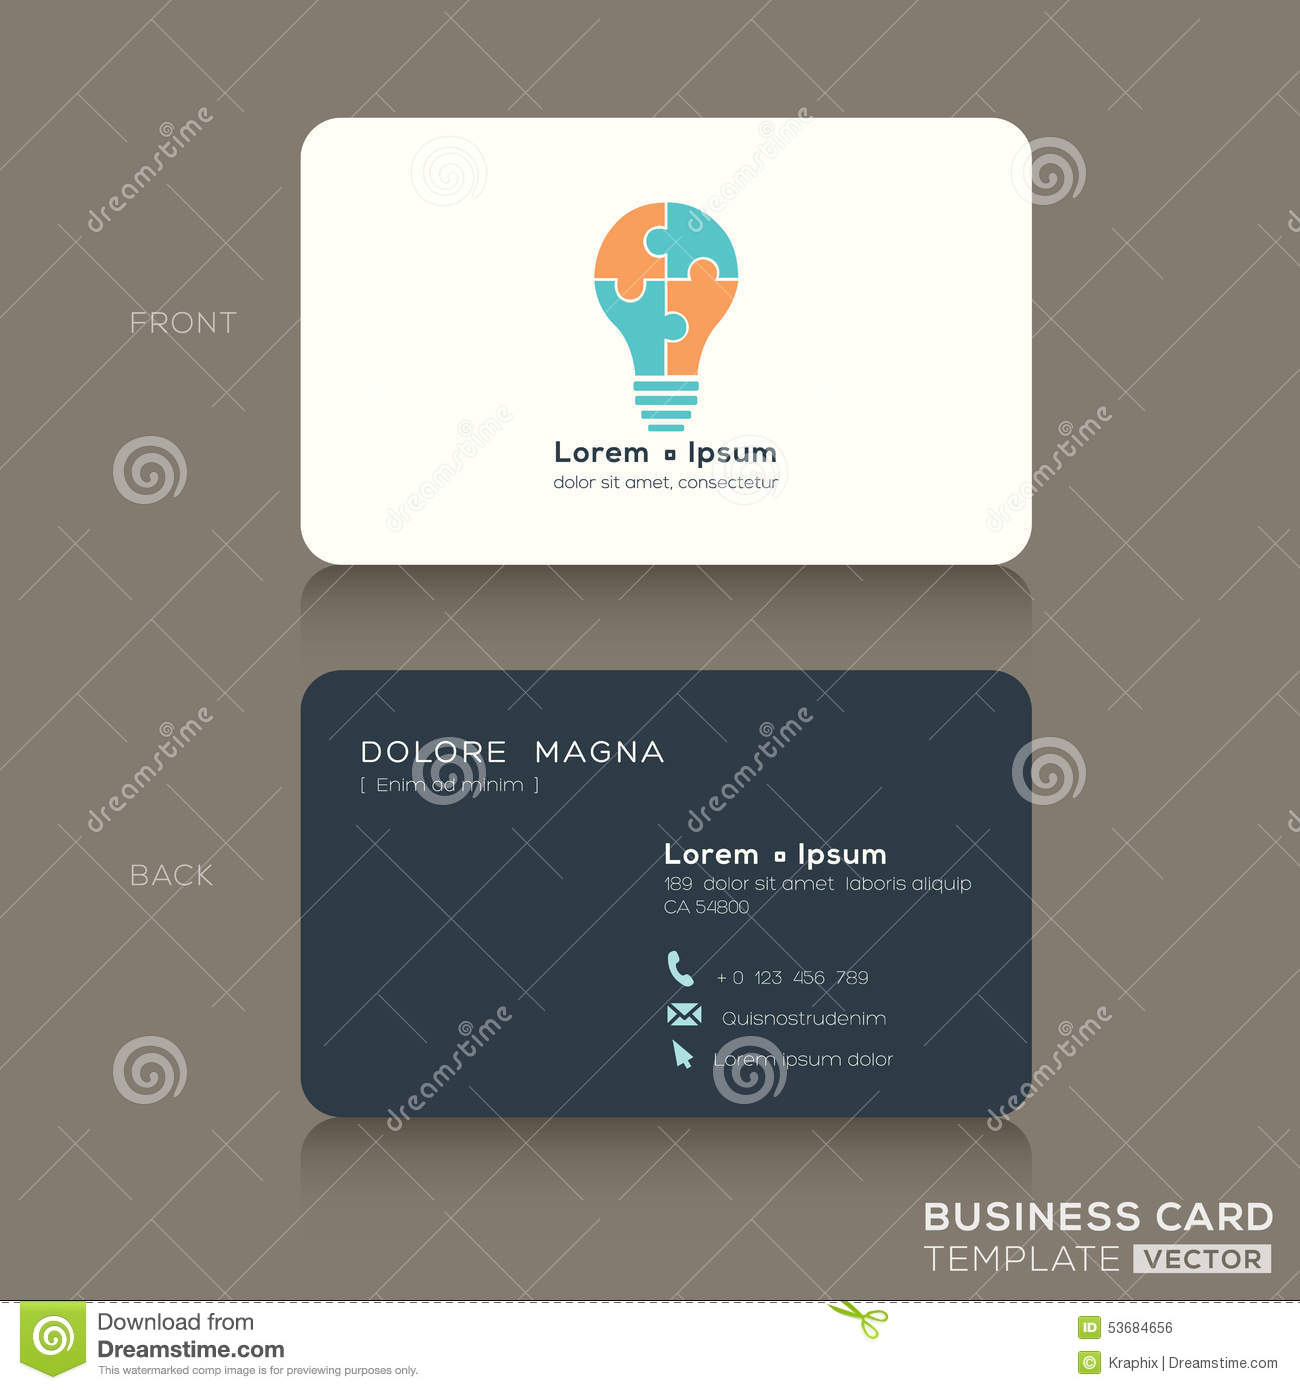 Idea creative business cards design template stock vector idea creative business cards design template wajeb Choice Image